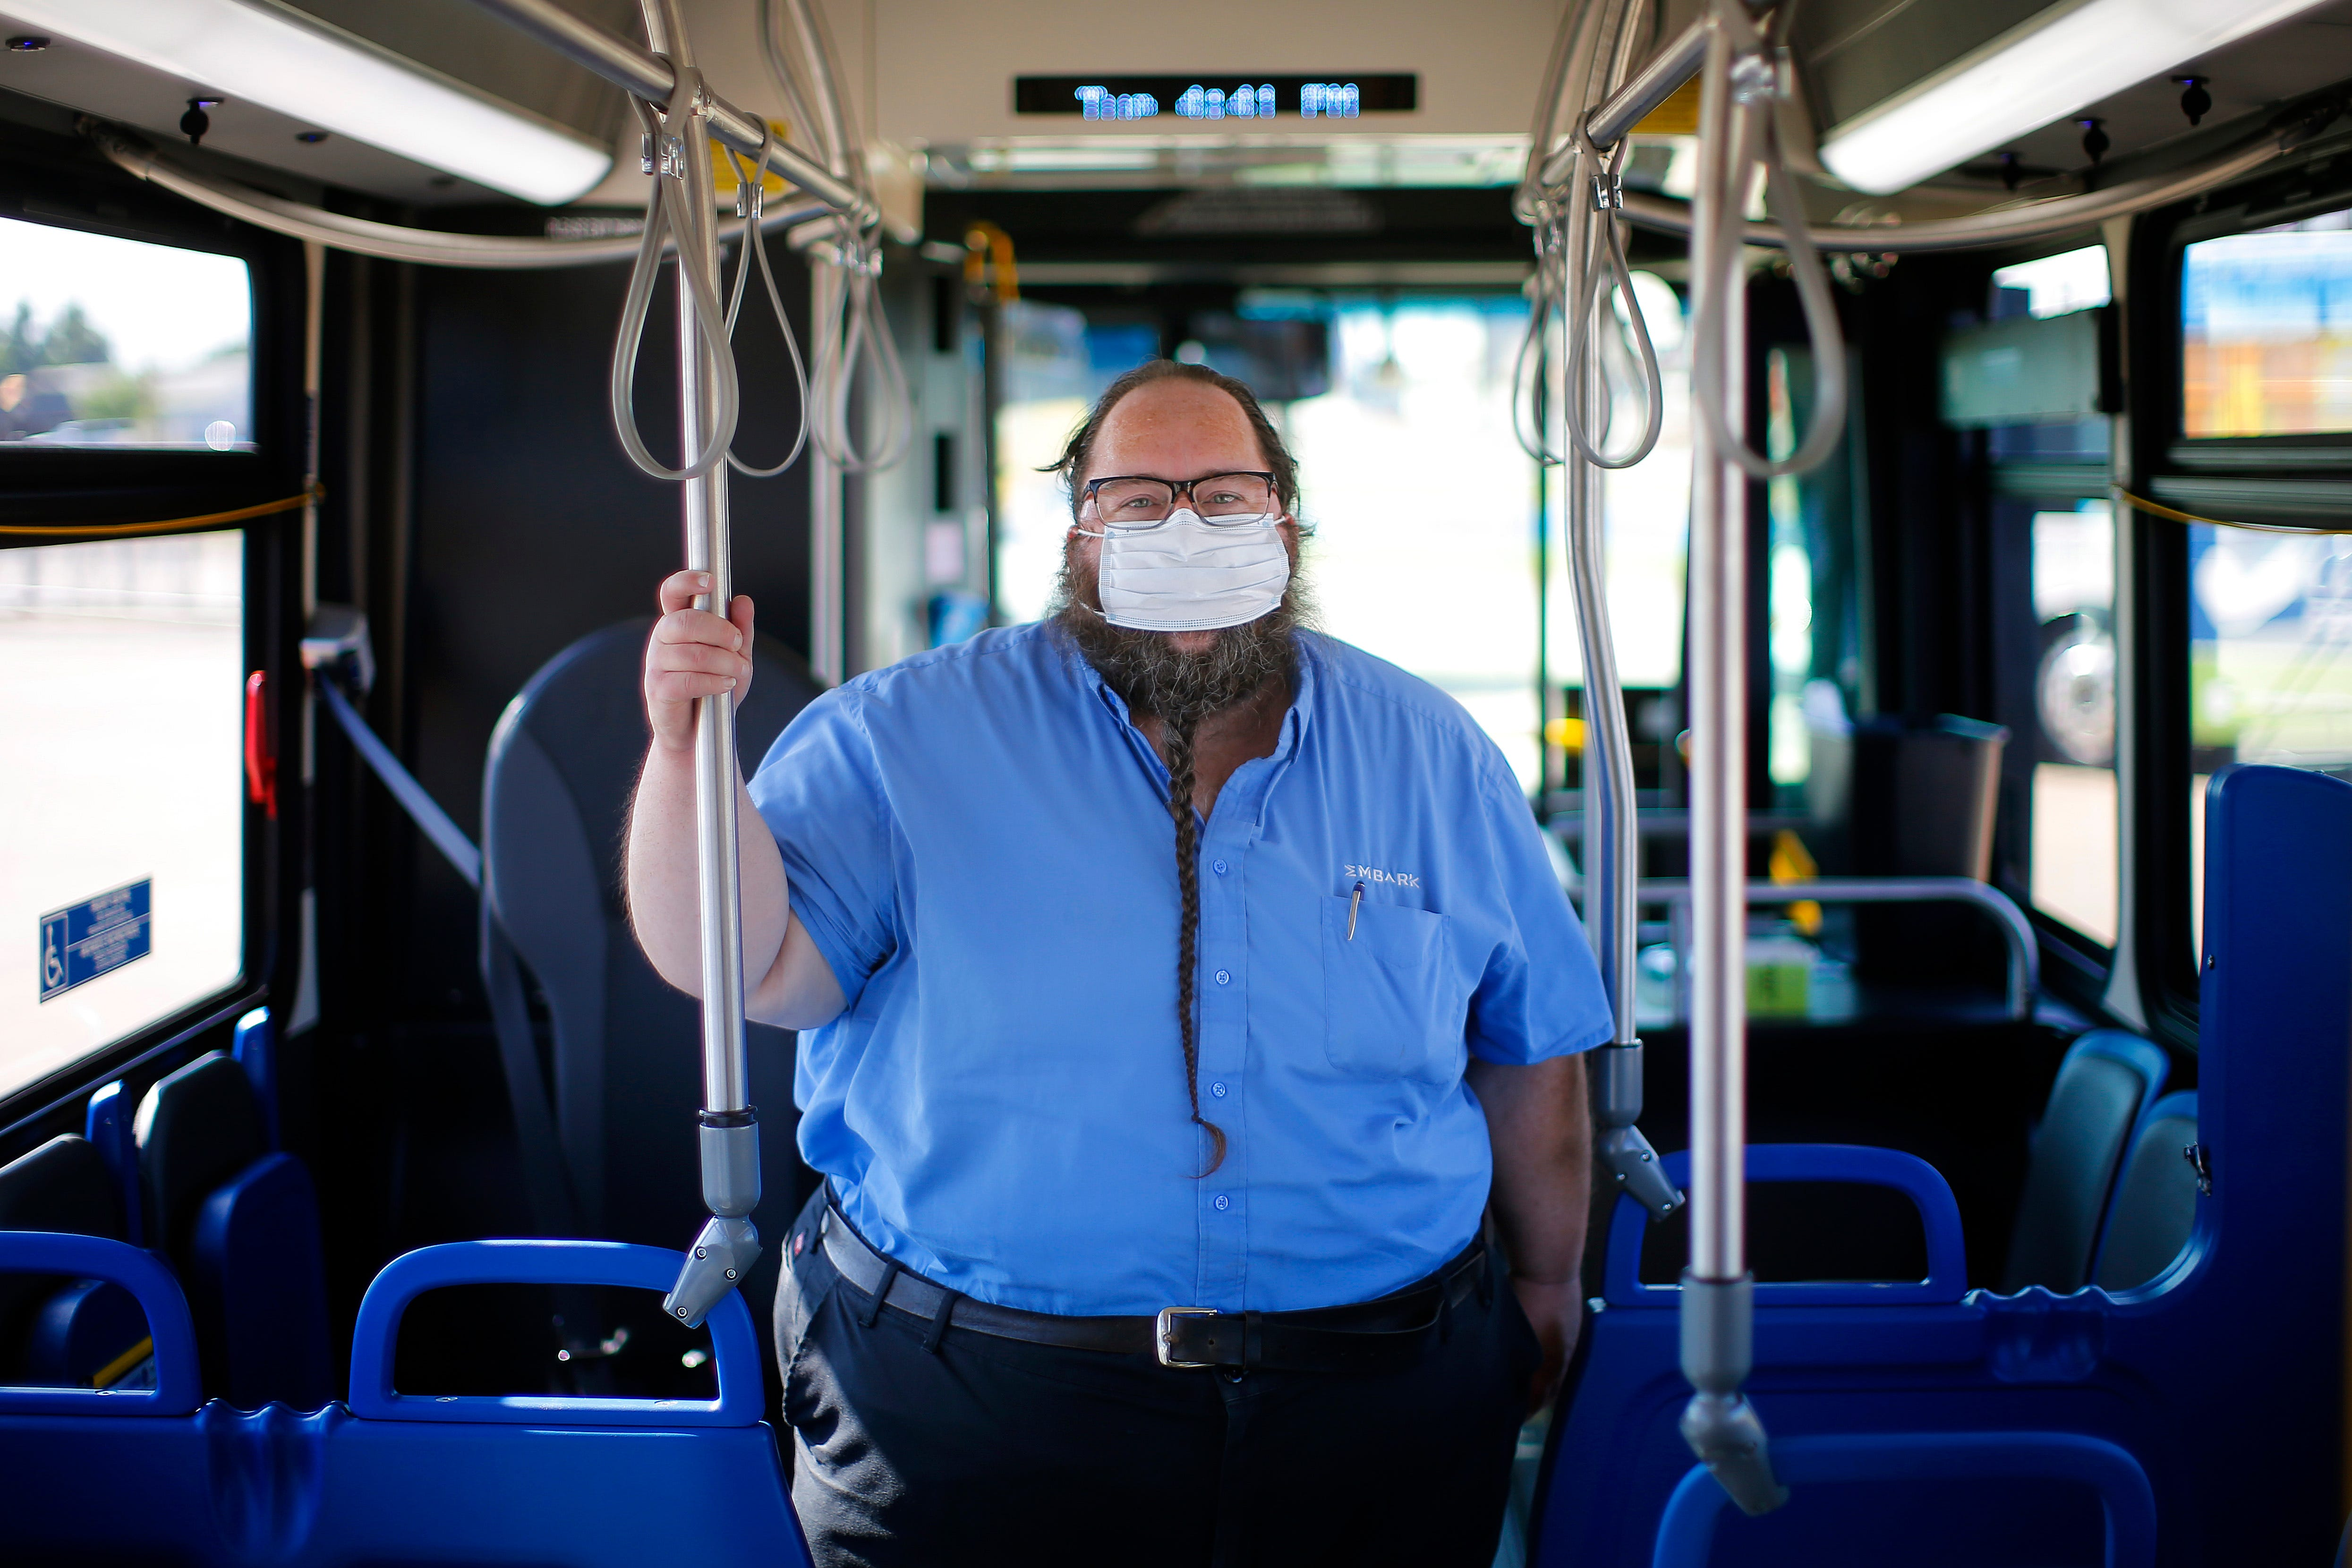 Oklahoma City bus driver Bruce Colbert was out of work for month after being hospitalized with COVID-19 but recently was cleared to get back behind the wheel.